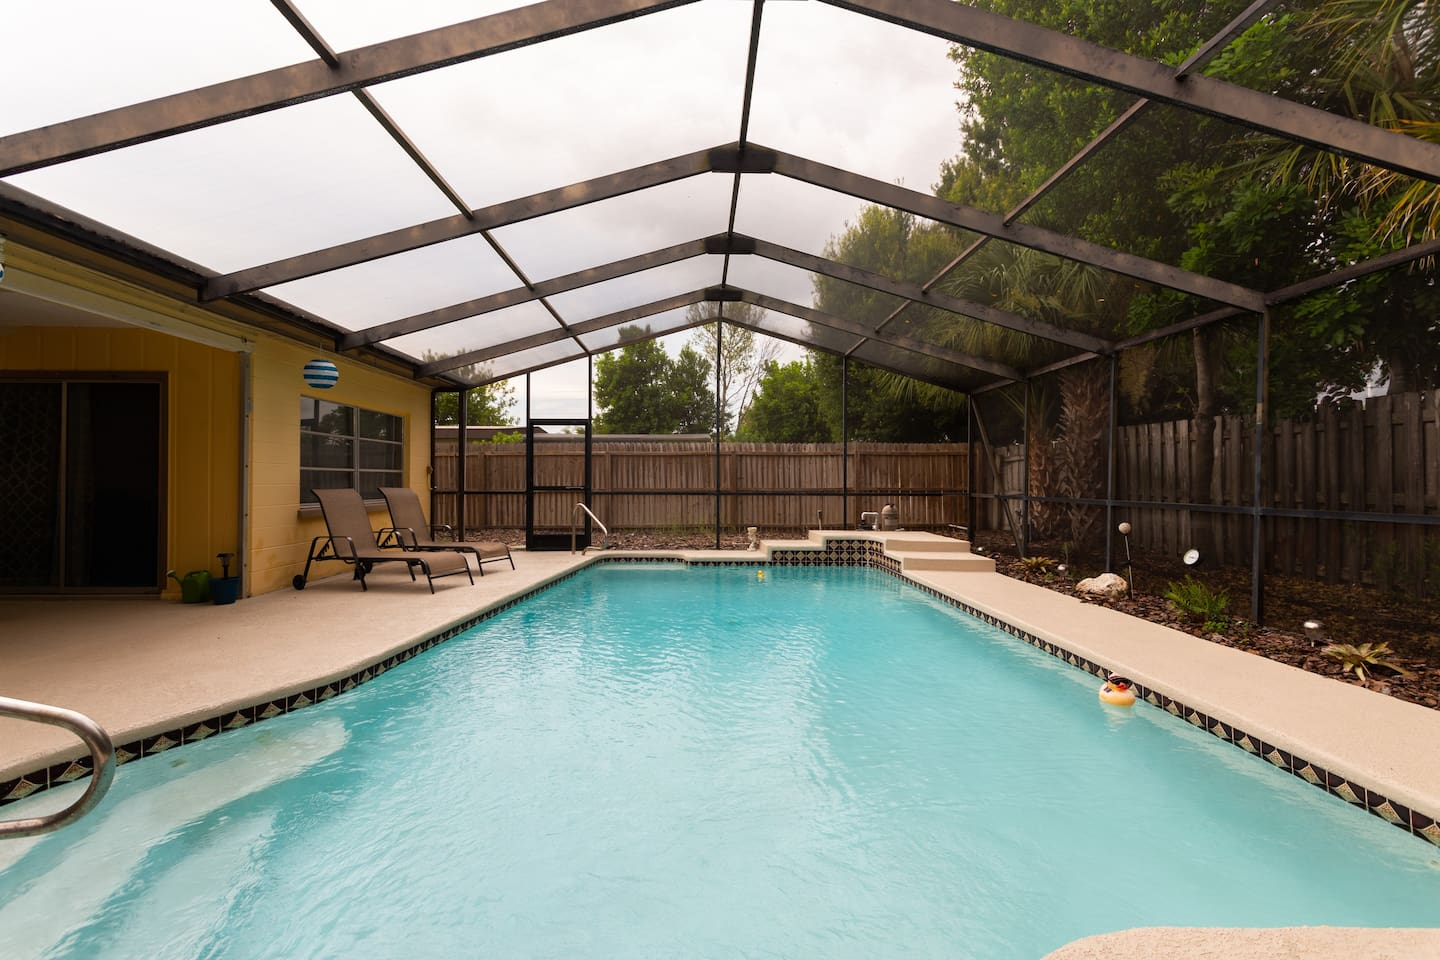 Bayshore Gardens BnB-2 Queen Bedrooms, Private Bathroom with Pool Access